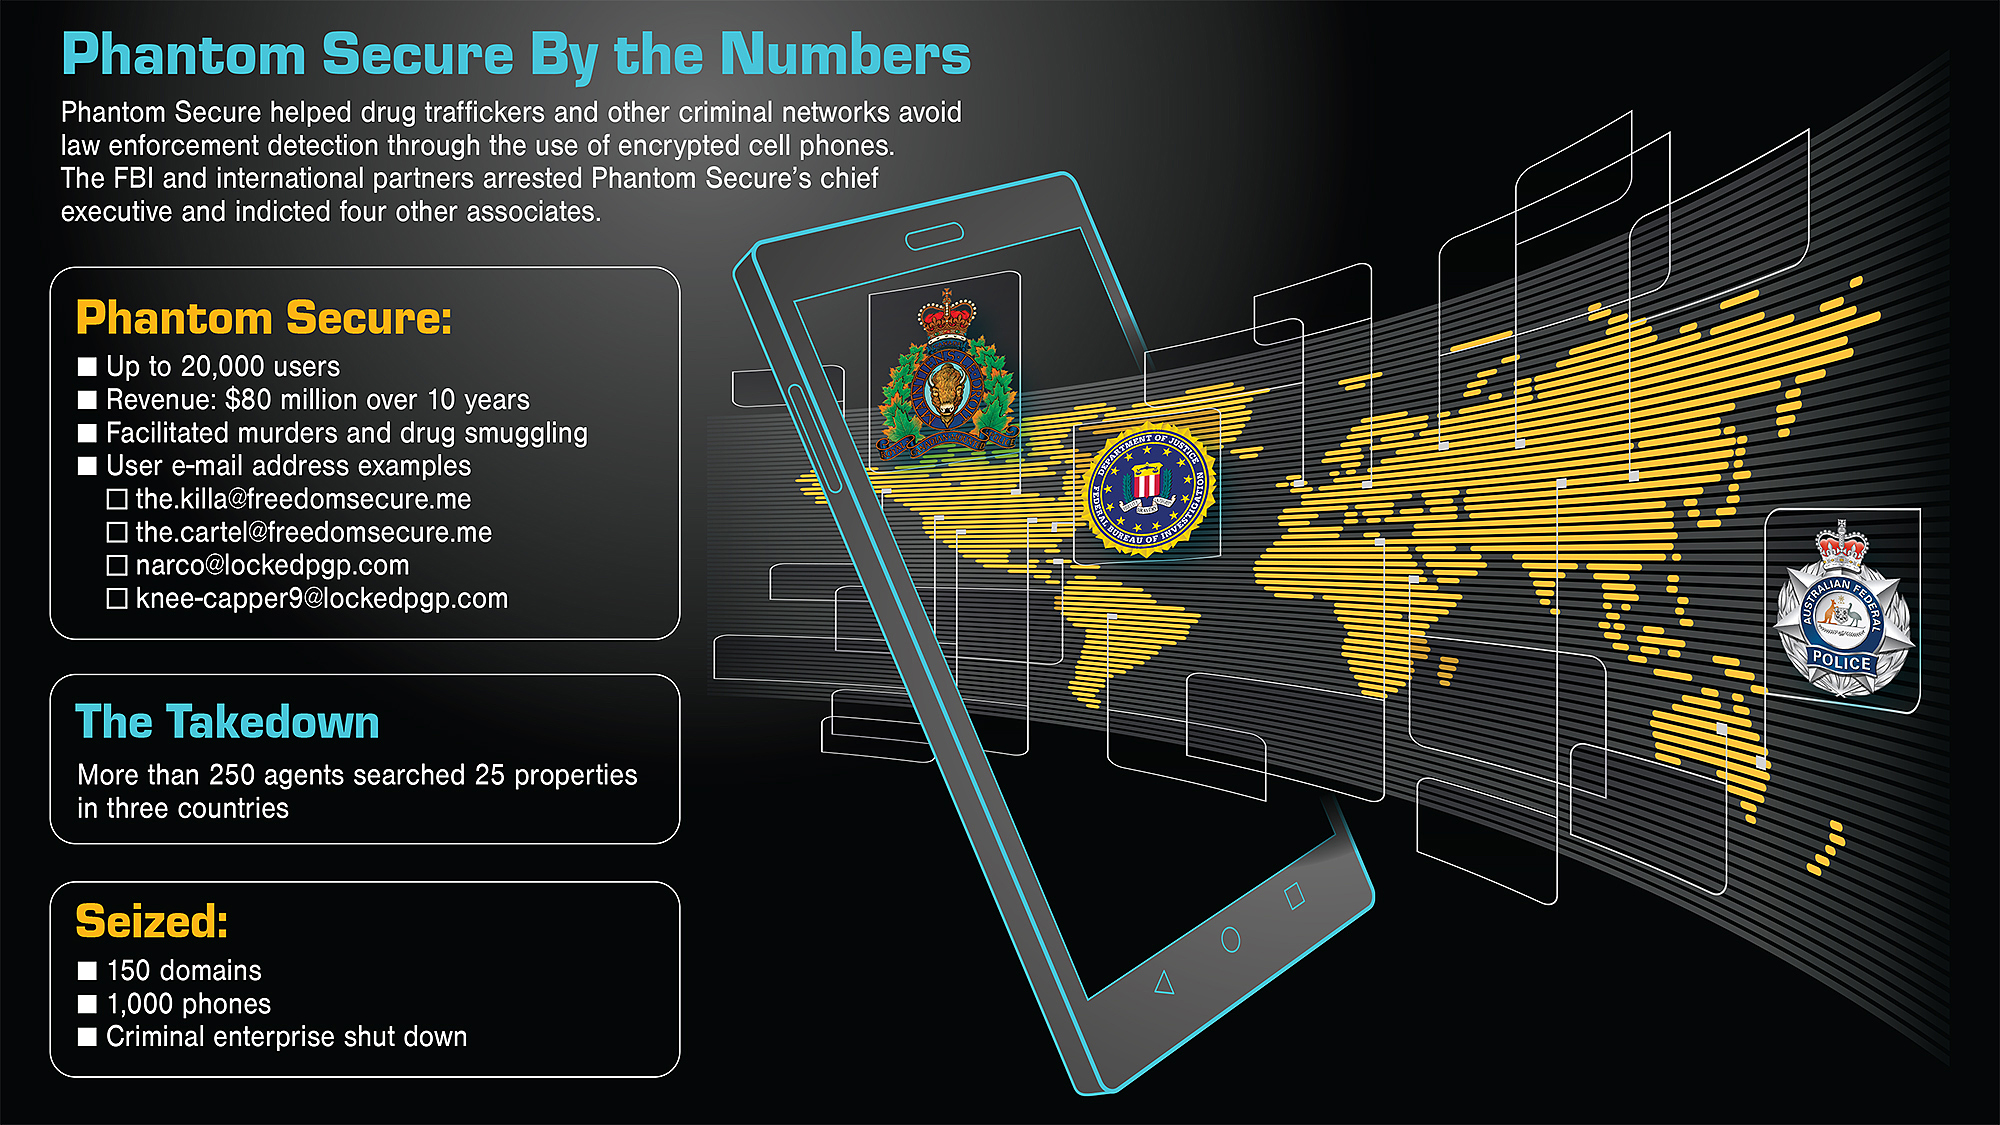 Infographic depicting a cell phone with a globe coming out of it, with the logos of the Royal Canadian Mounted Police, FBI, and Australian Federal Police on the globe.